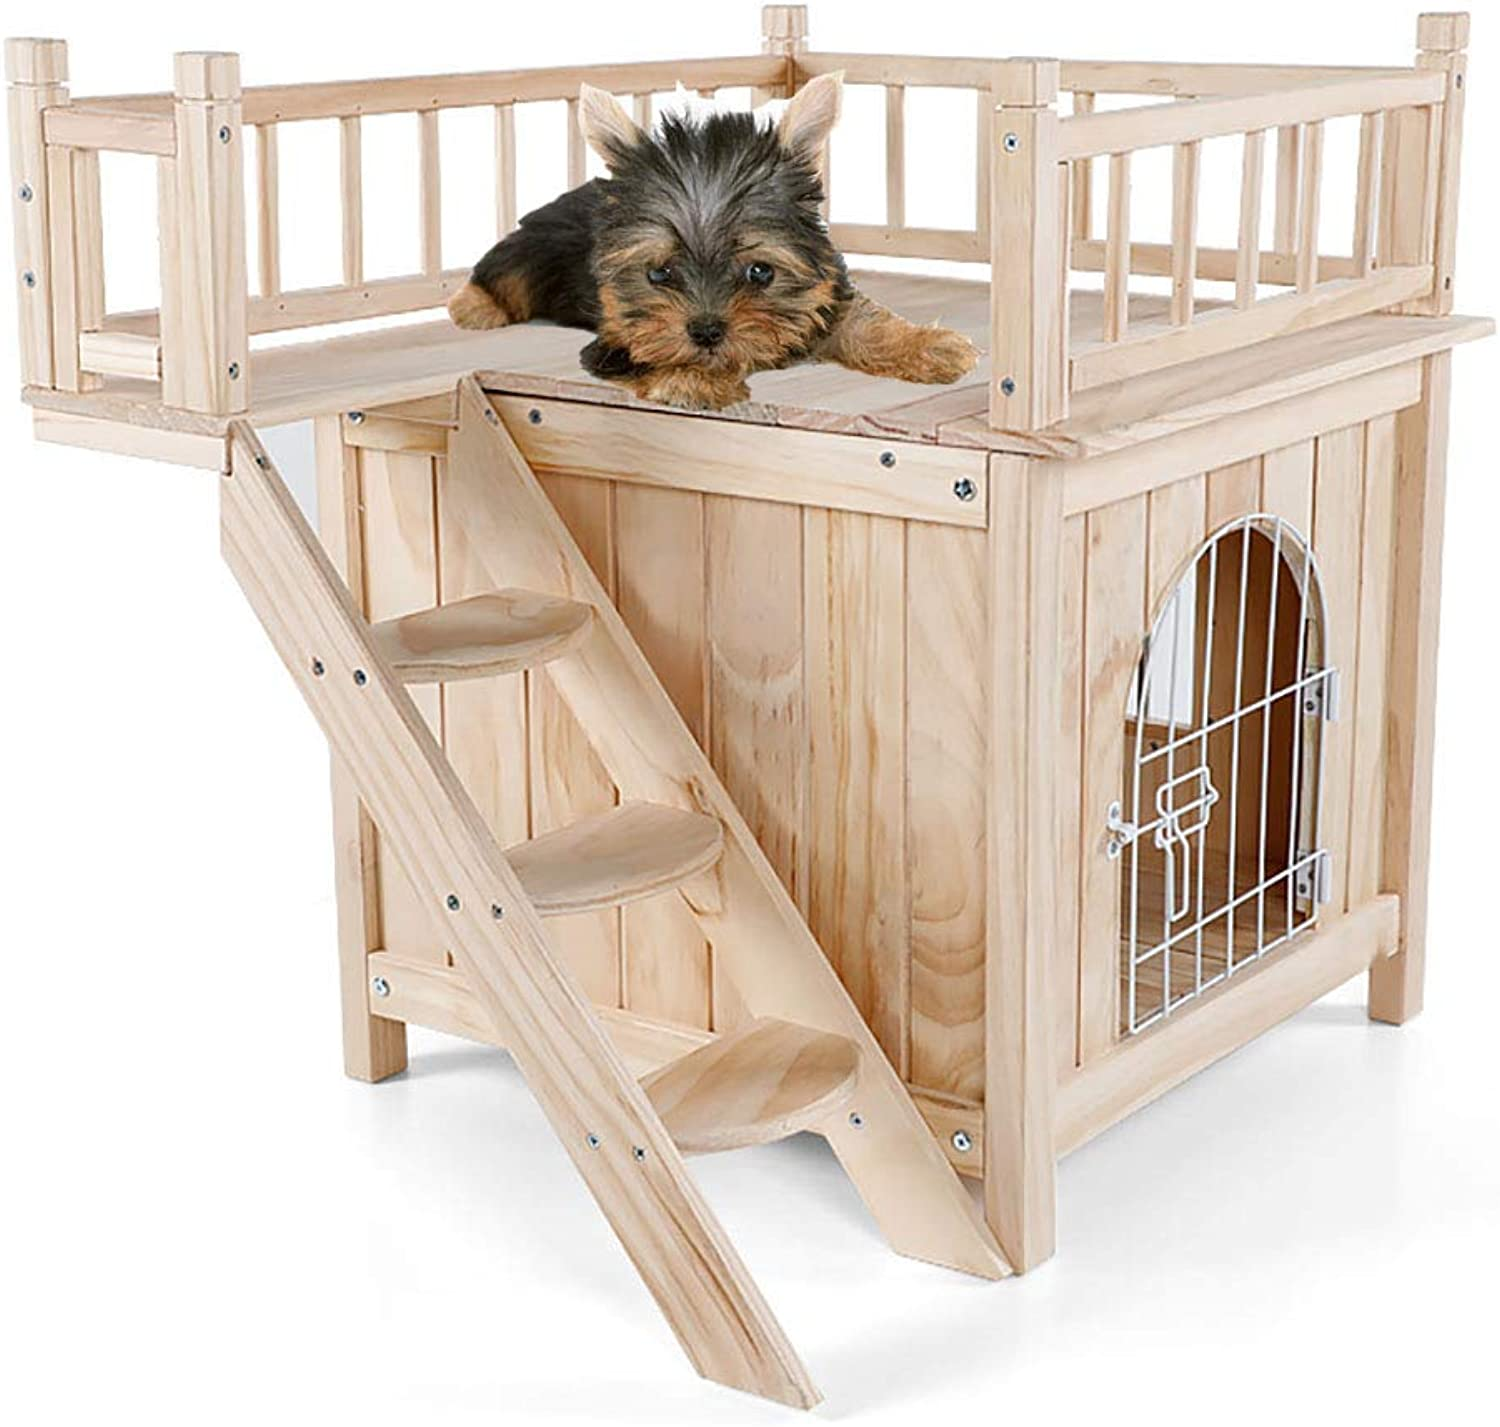 DJLOOKK Pet Cat Dog House Wooden Outdoor Indoor Dog Cat Puppy House Room with a View